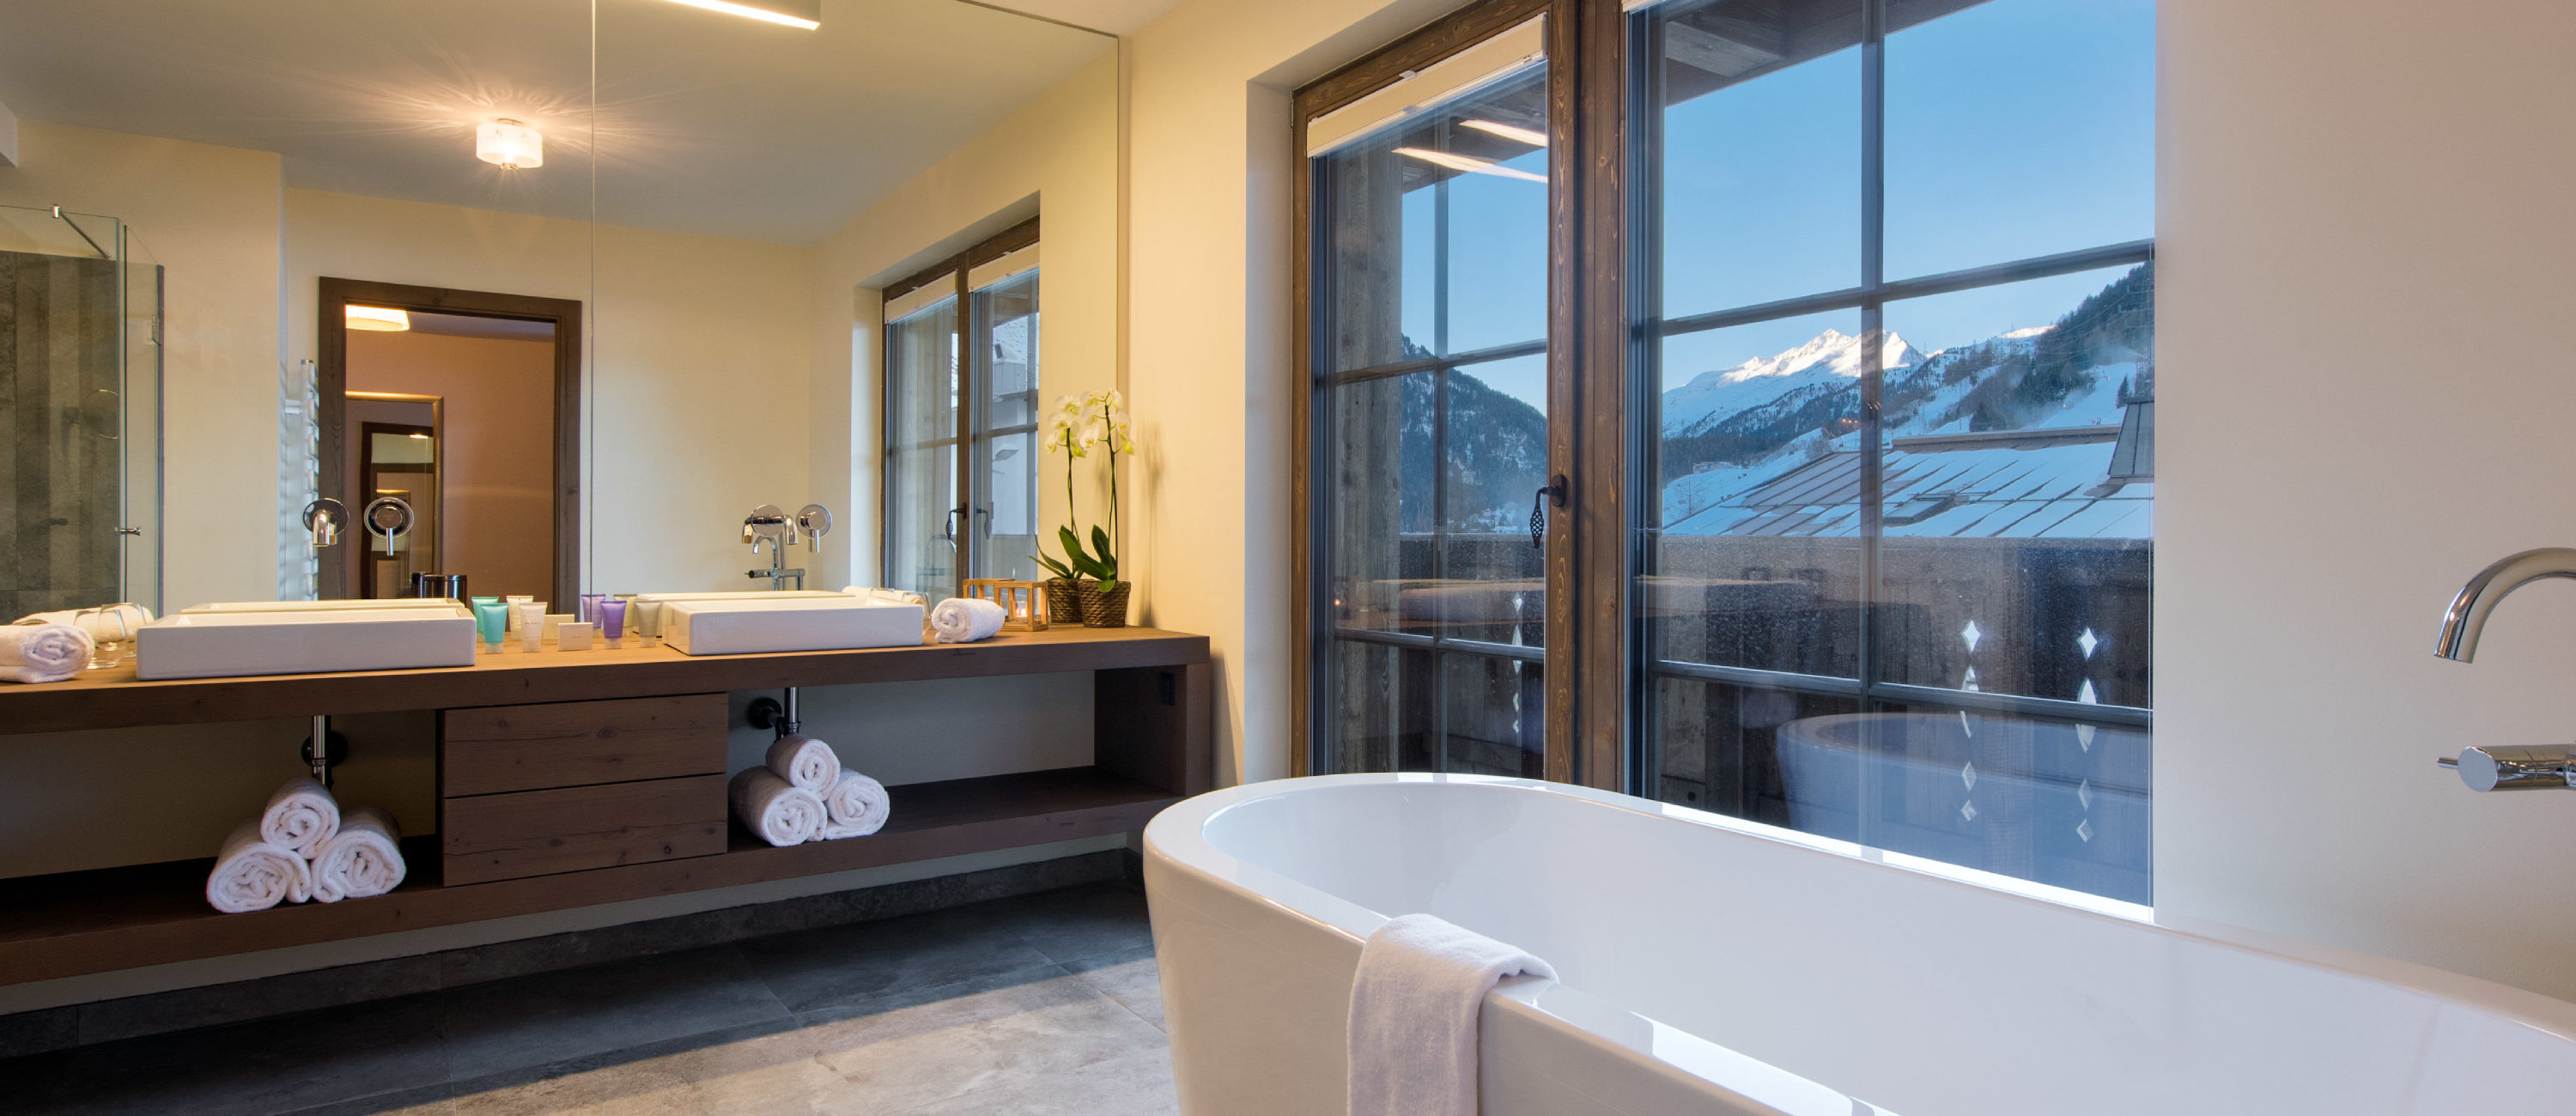 Chalet Kanzi Bathroom with view of St Anton